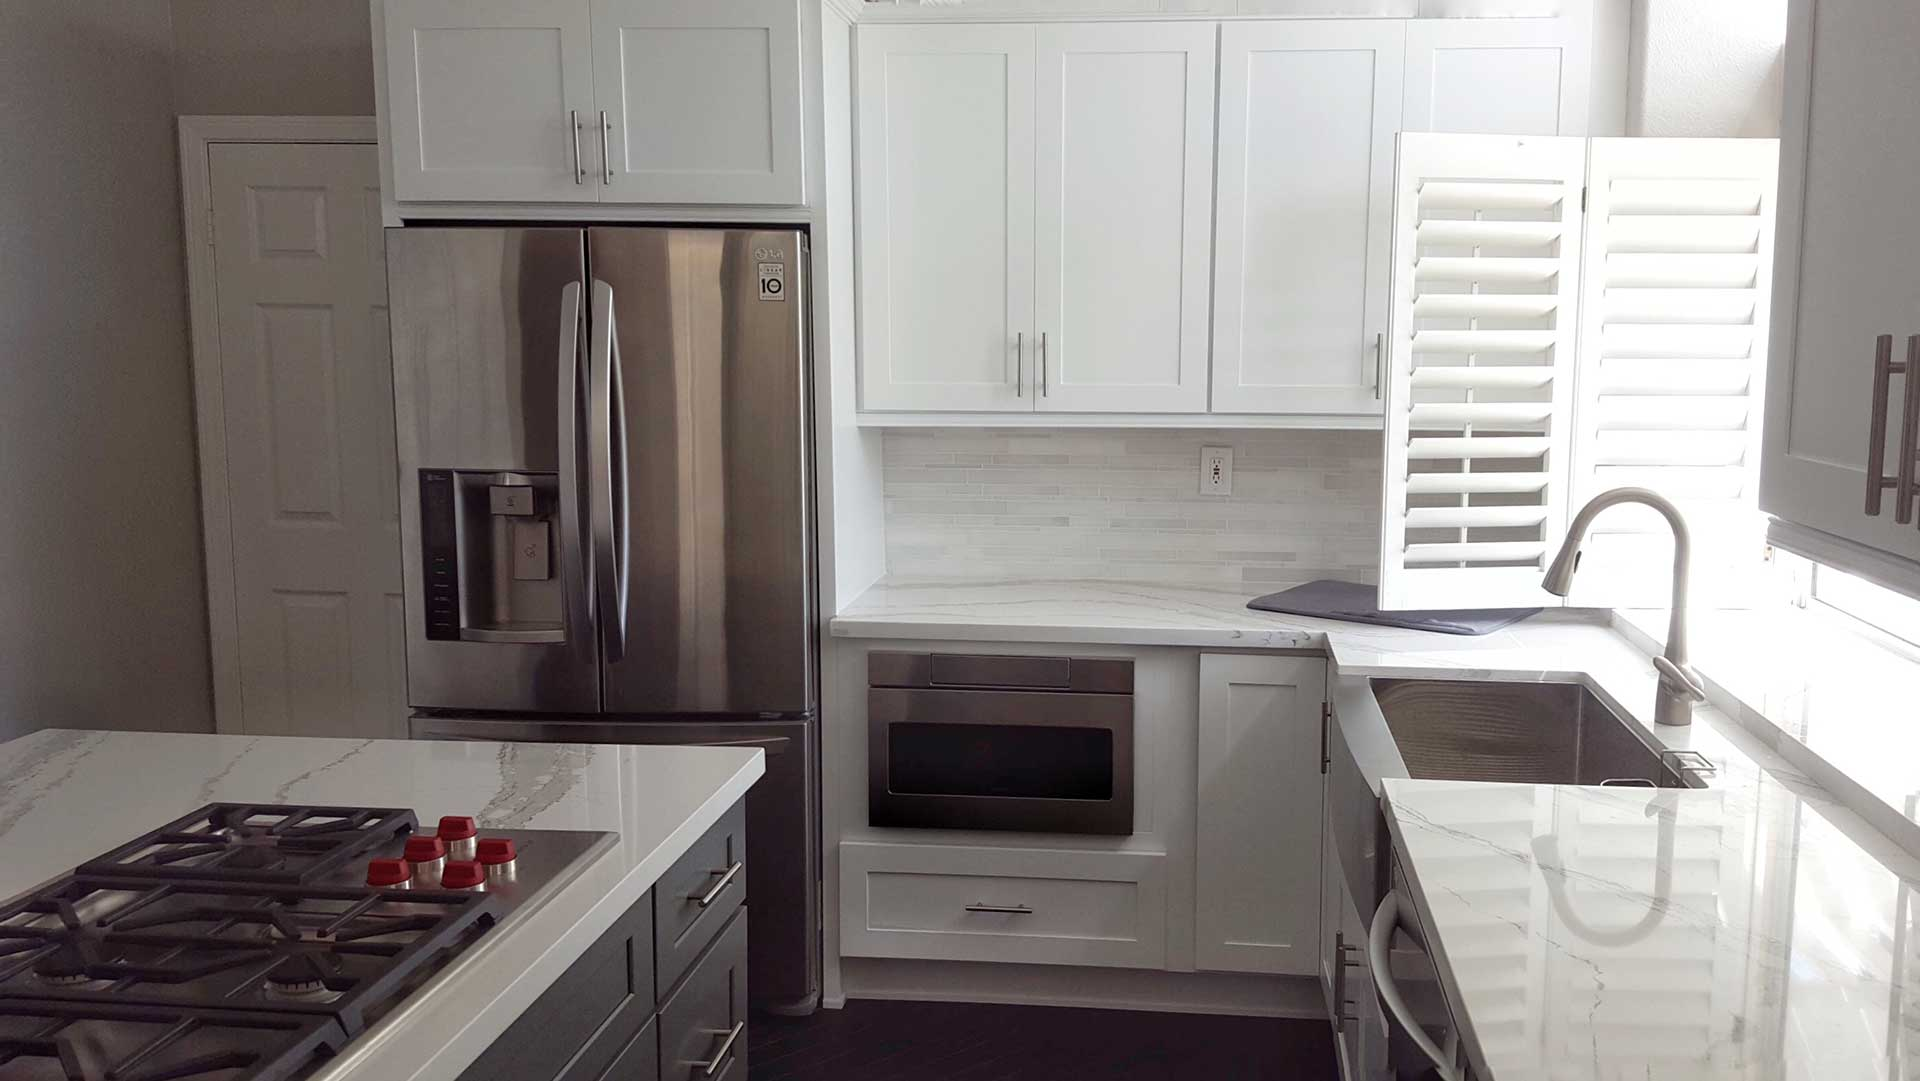 Fetching Shaker Kitchen Cabinets From Cabinet Wholesalers Shaker Kitchen Cabinets Cost Shaker Kitchen Island Grey houzz-03 White Shaker Kitchen